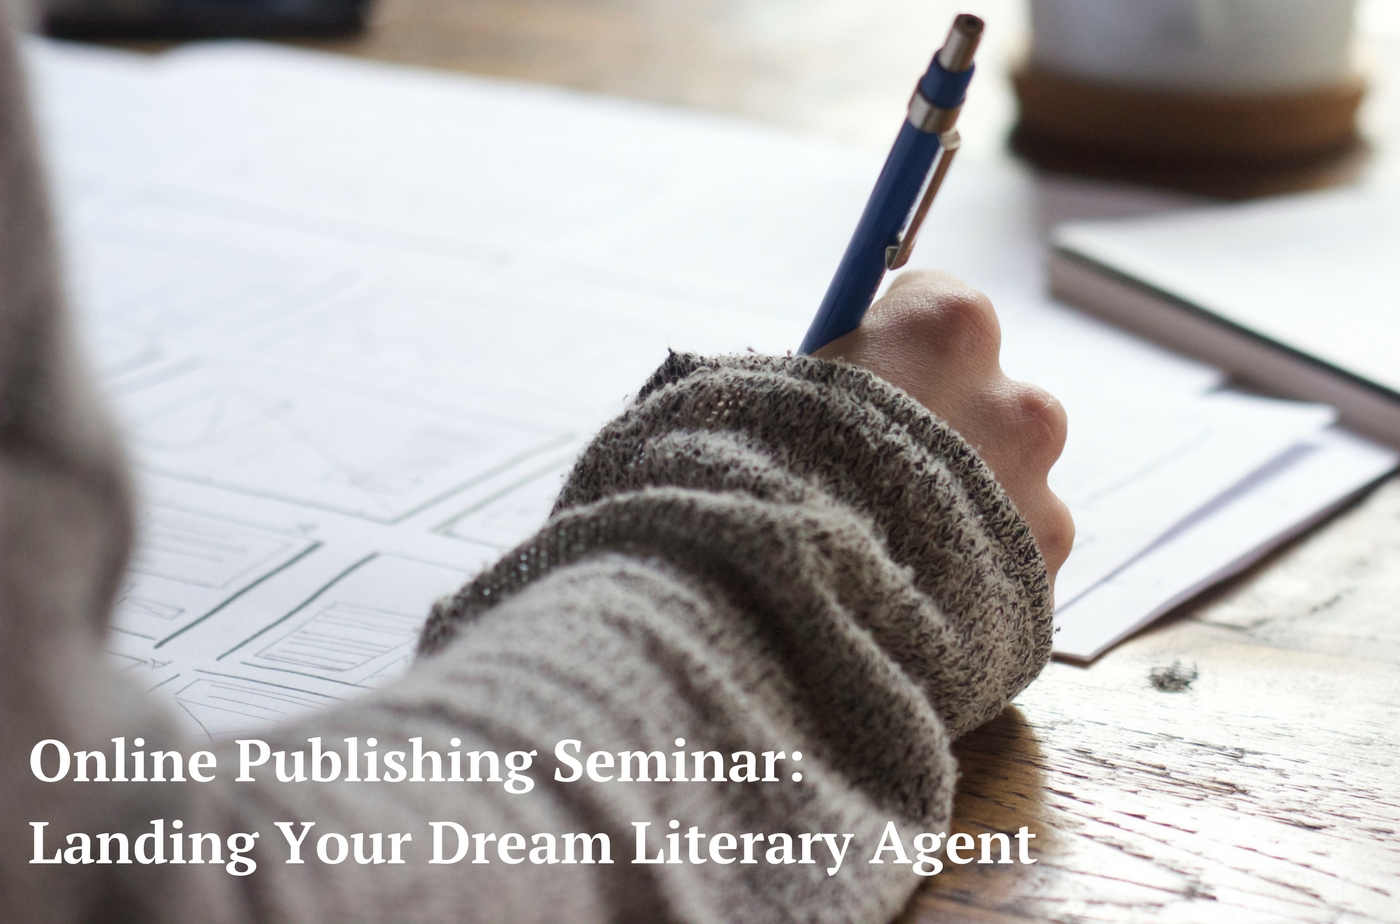 Catapult online classes: Sarah Bowlin, Publishing Seminar: Writing the Query Letter &  Landing Your Dream Literary Agent  , Publishing, Independent Study